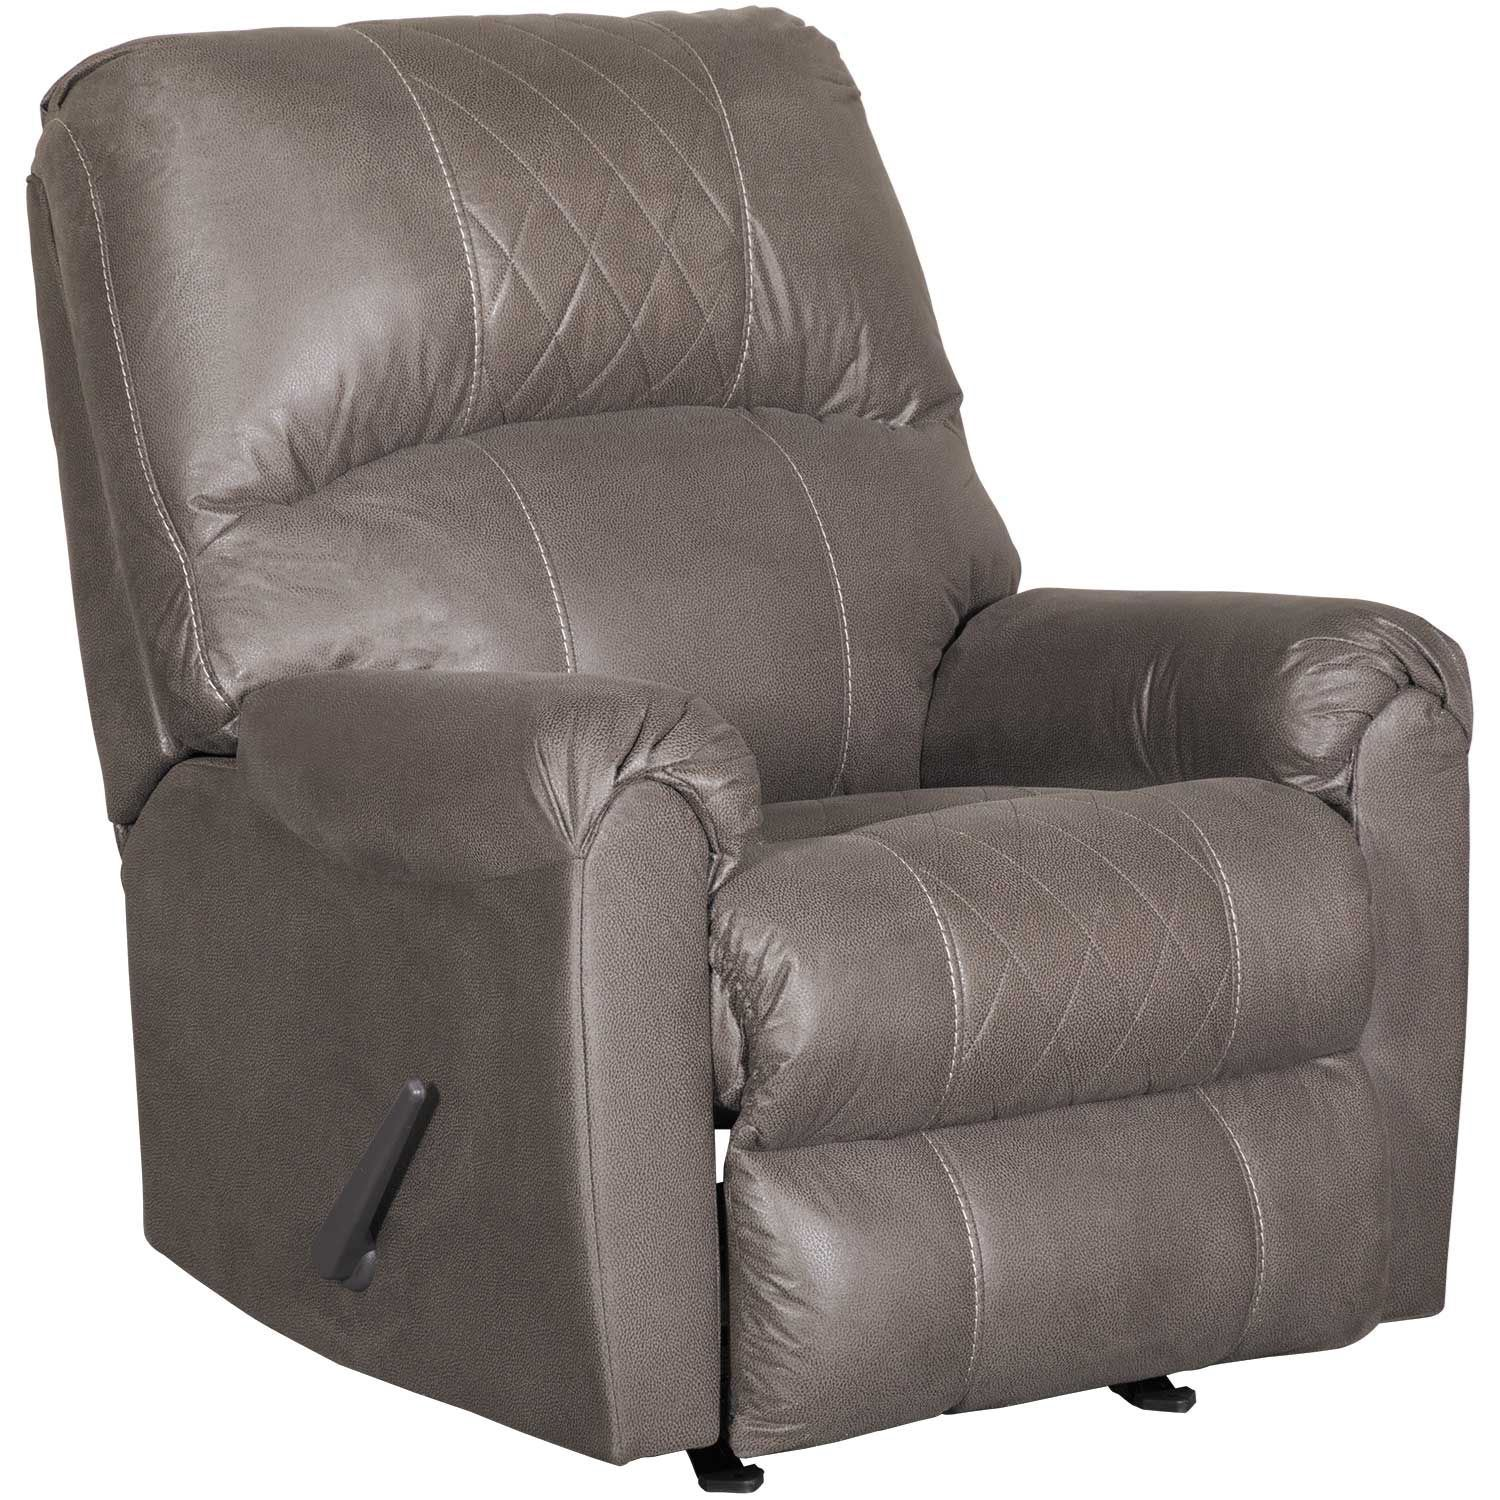 Global Patient Recliner Market report includes dynamics, products, application 2020-2026